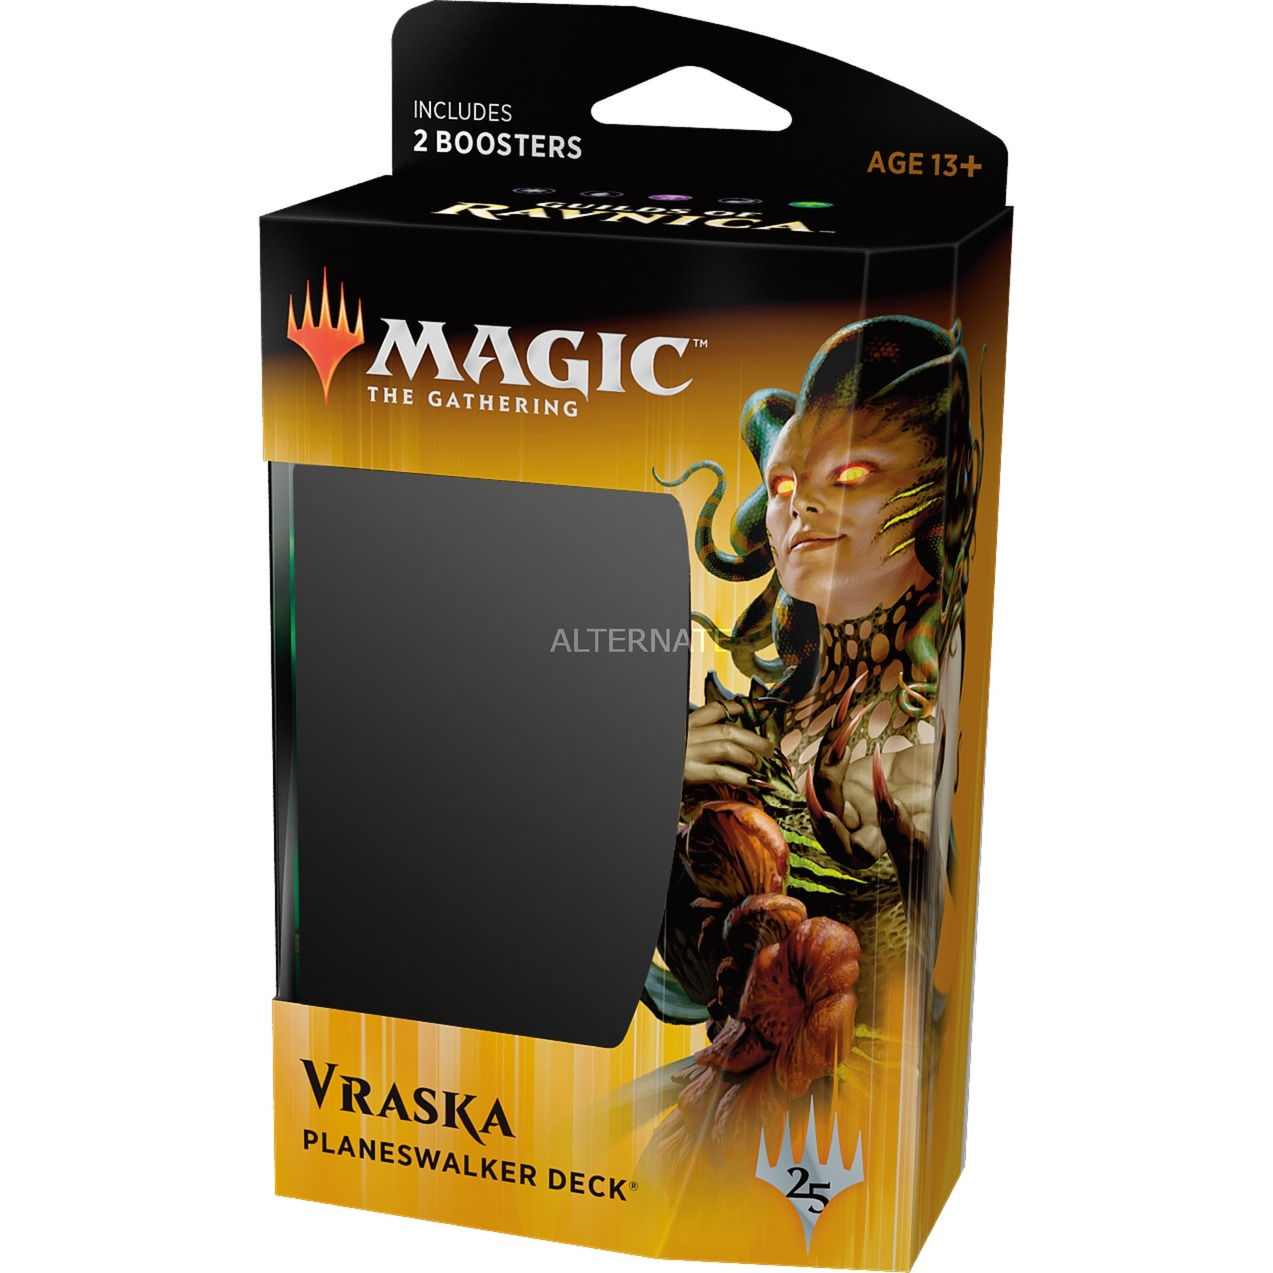 Magic: The Gathering - Guilds of Ravnica Planeswalker Deck Ral englisch, Cartas coleccionables